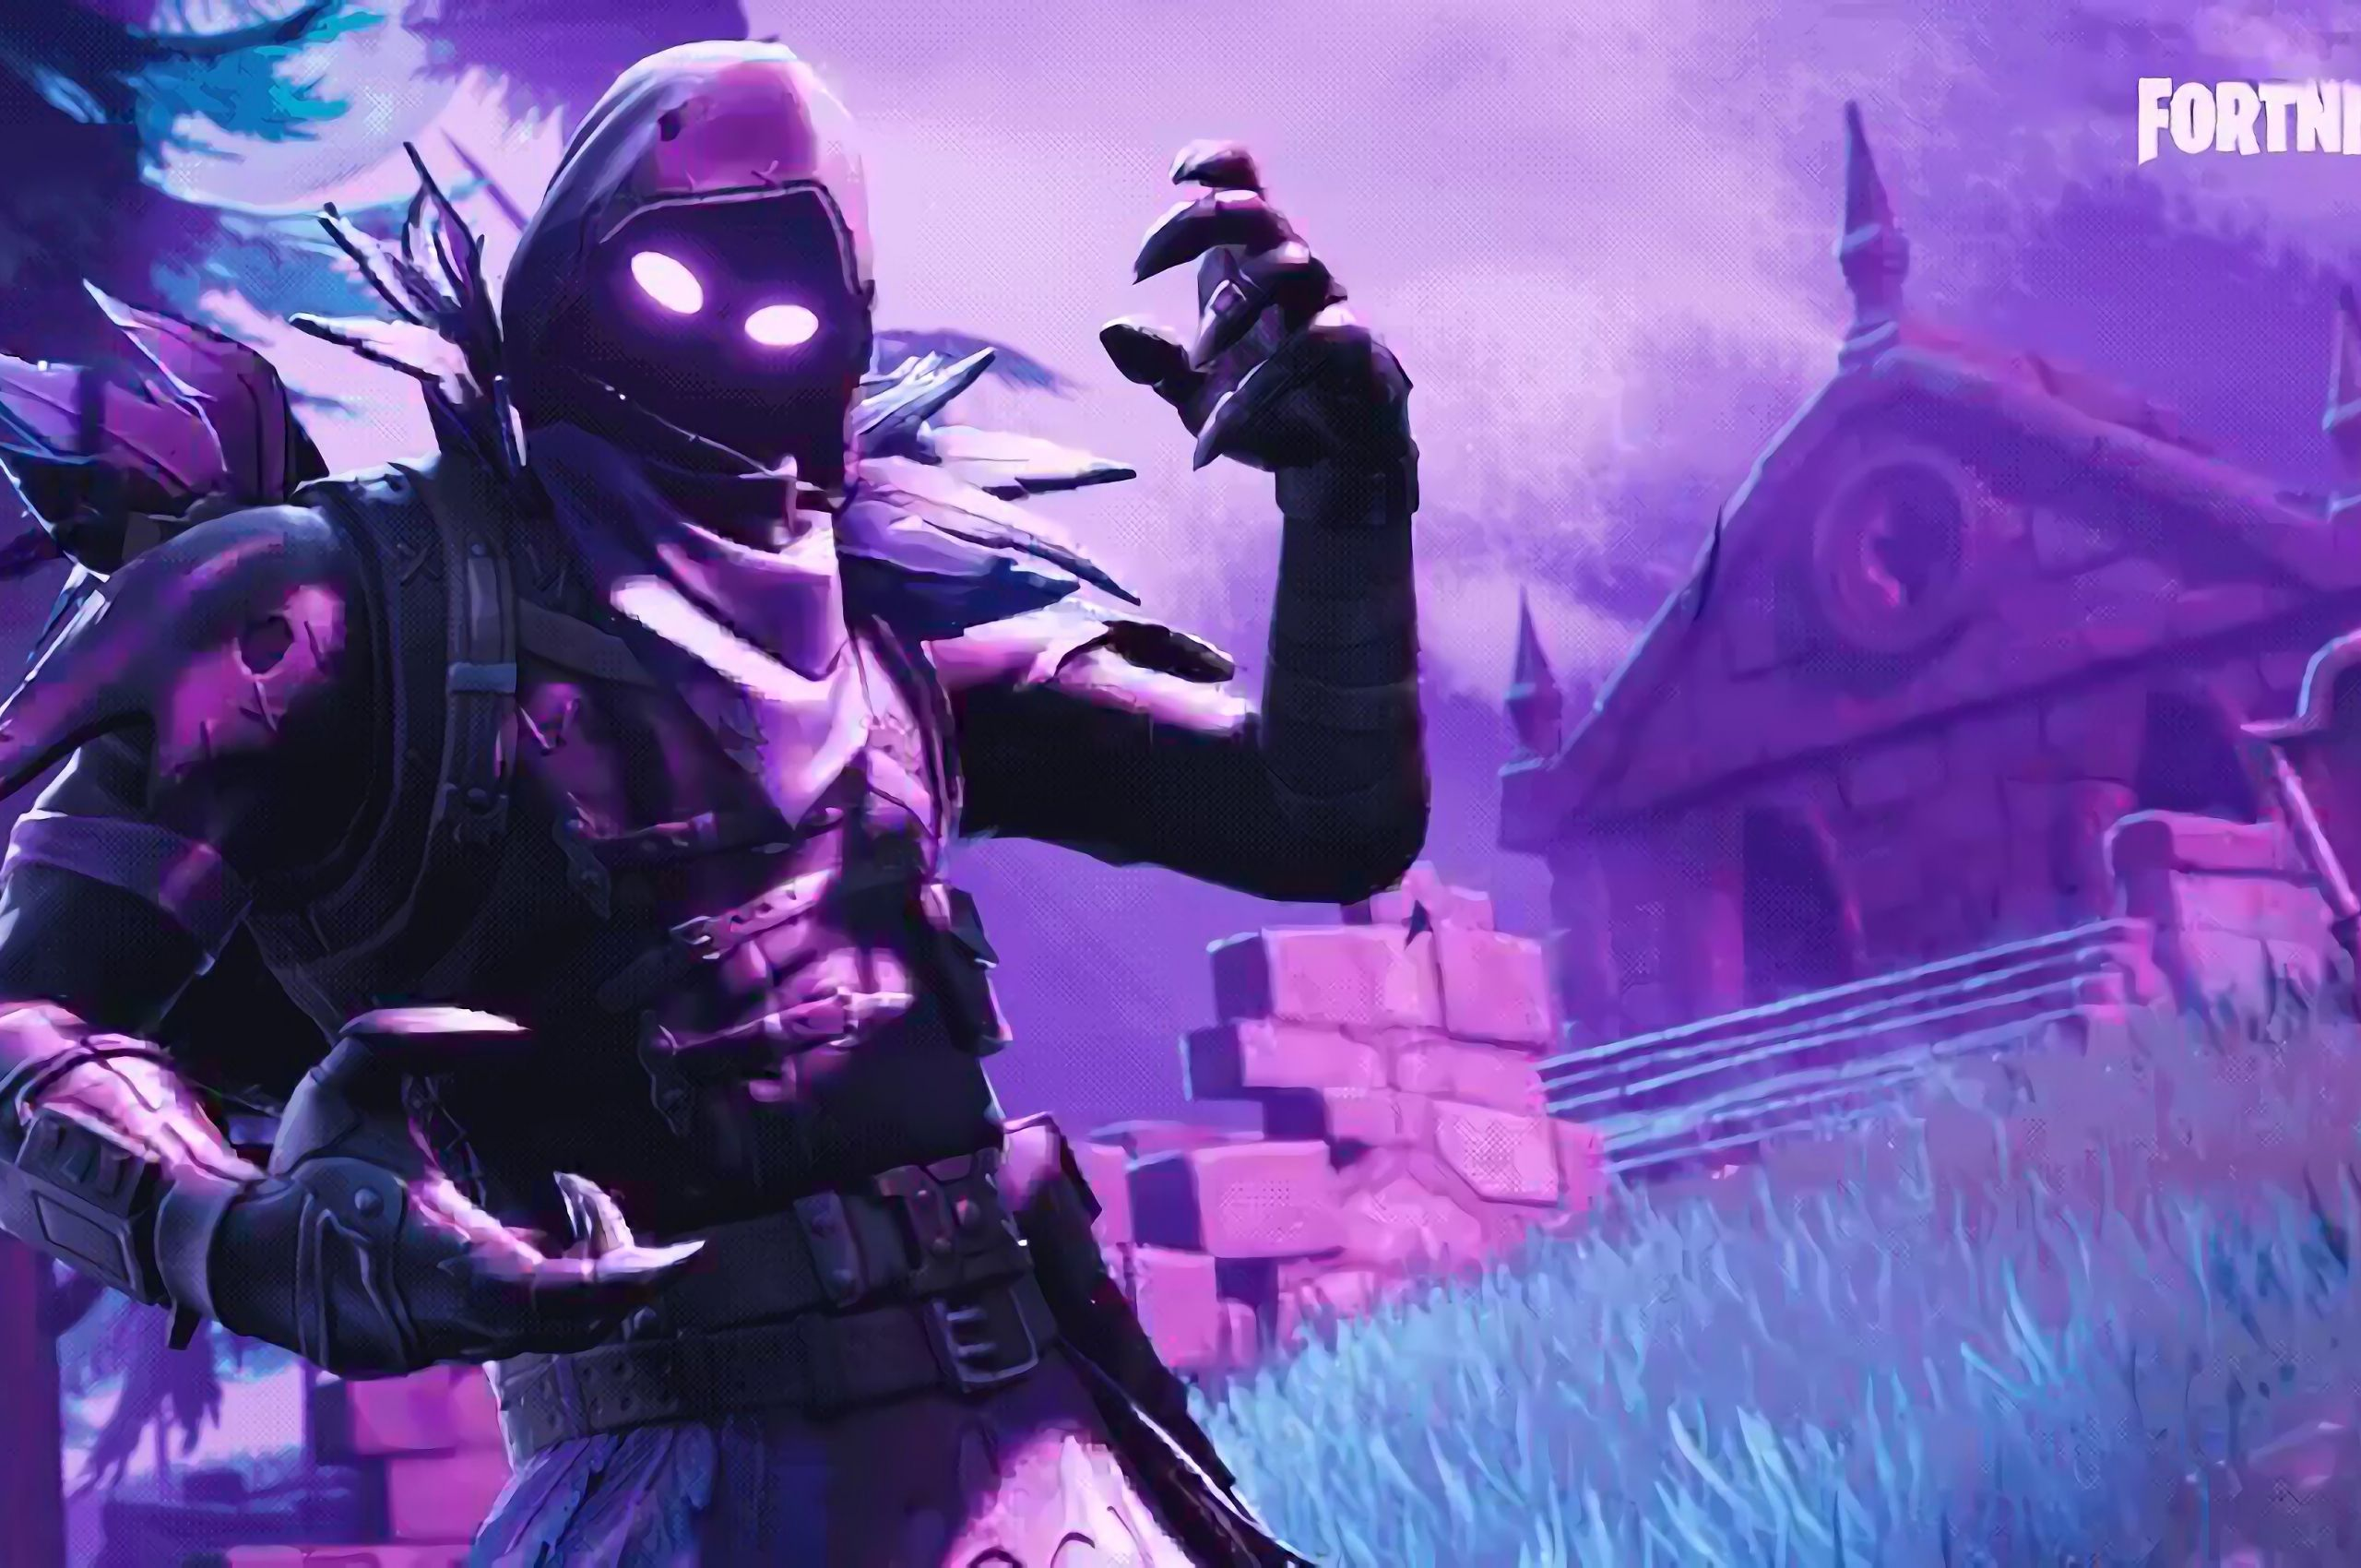 Free download Fortnite Wallpapers HD 4K 8K Battle Royale [3840x2160